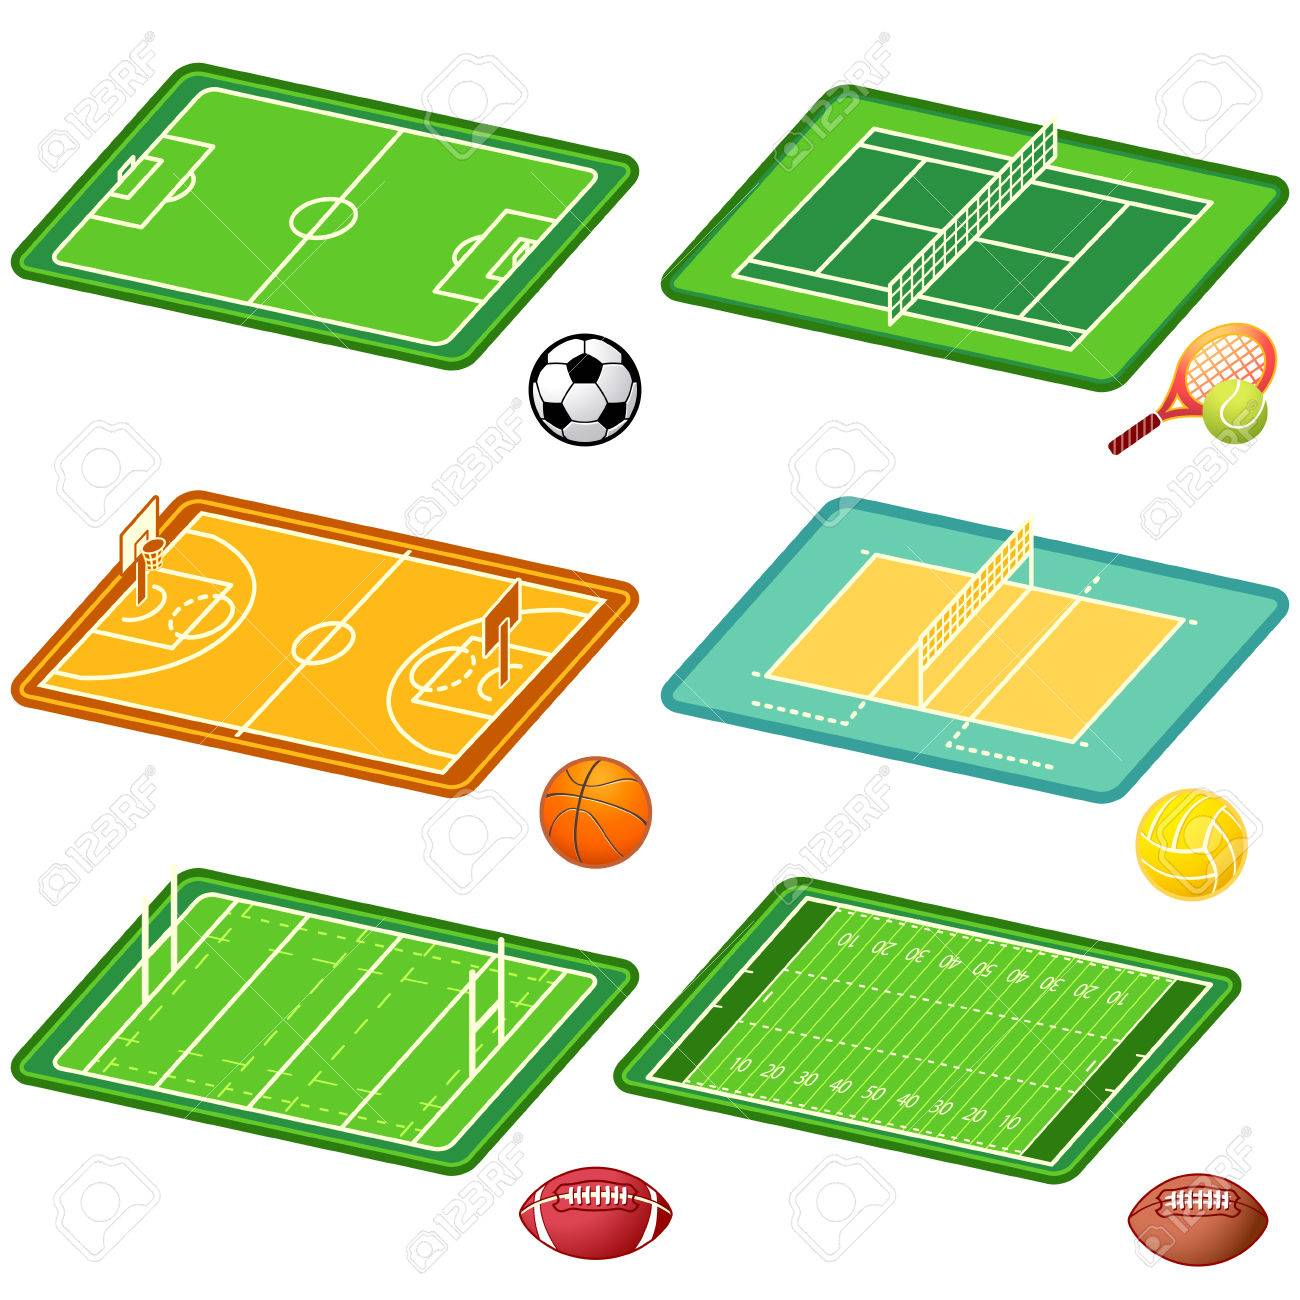 1300x1300 Soccer, Tennis, Basketball, Volleyball, Ragby, American Football